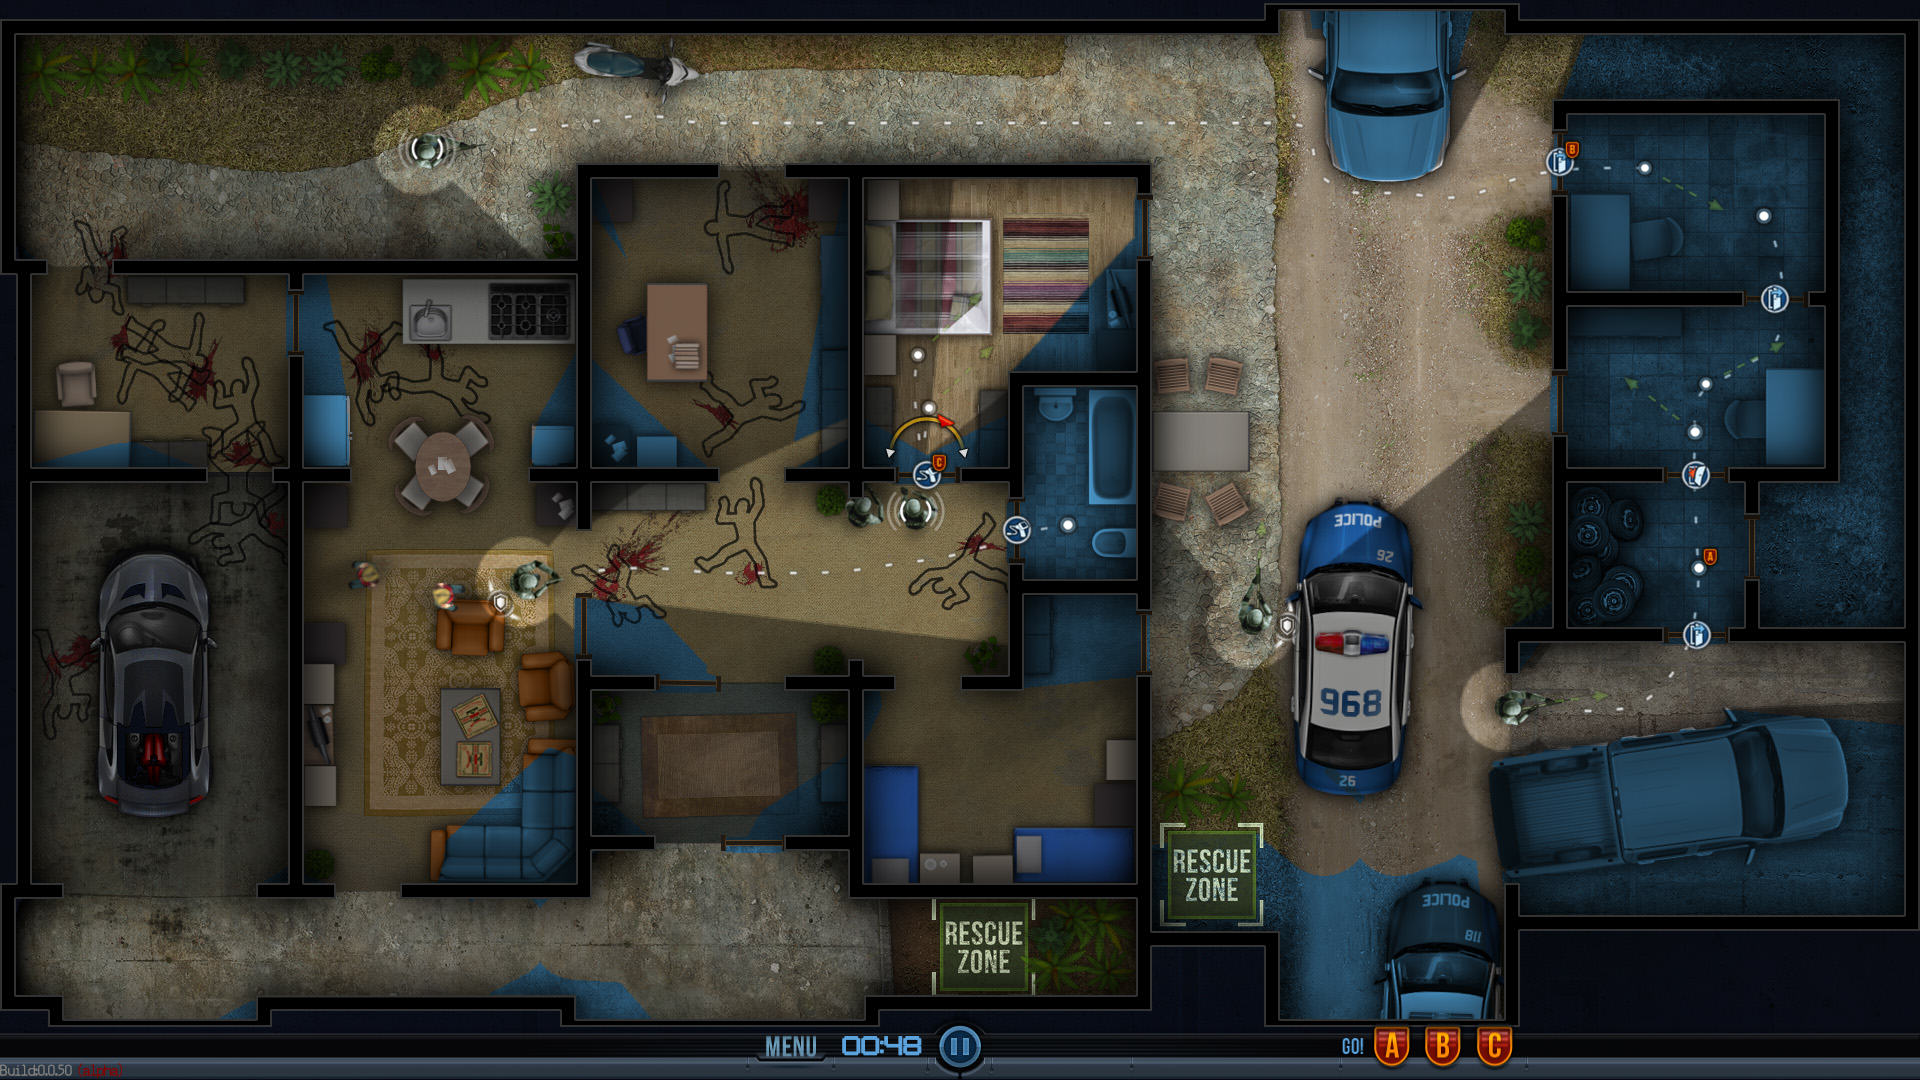 alpha5f Get Great Indie Games In New Pay What You Want Humble Bundle